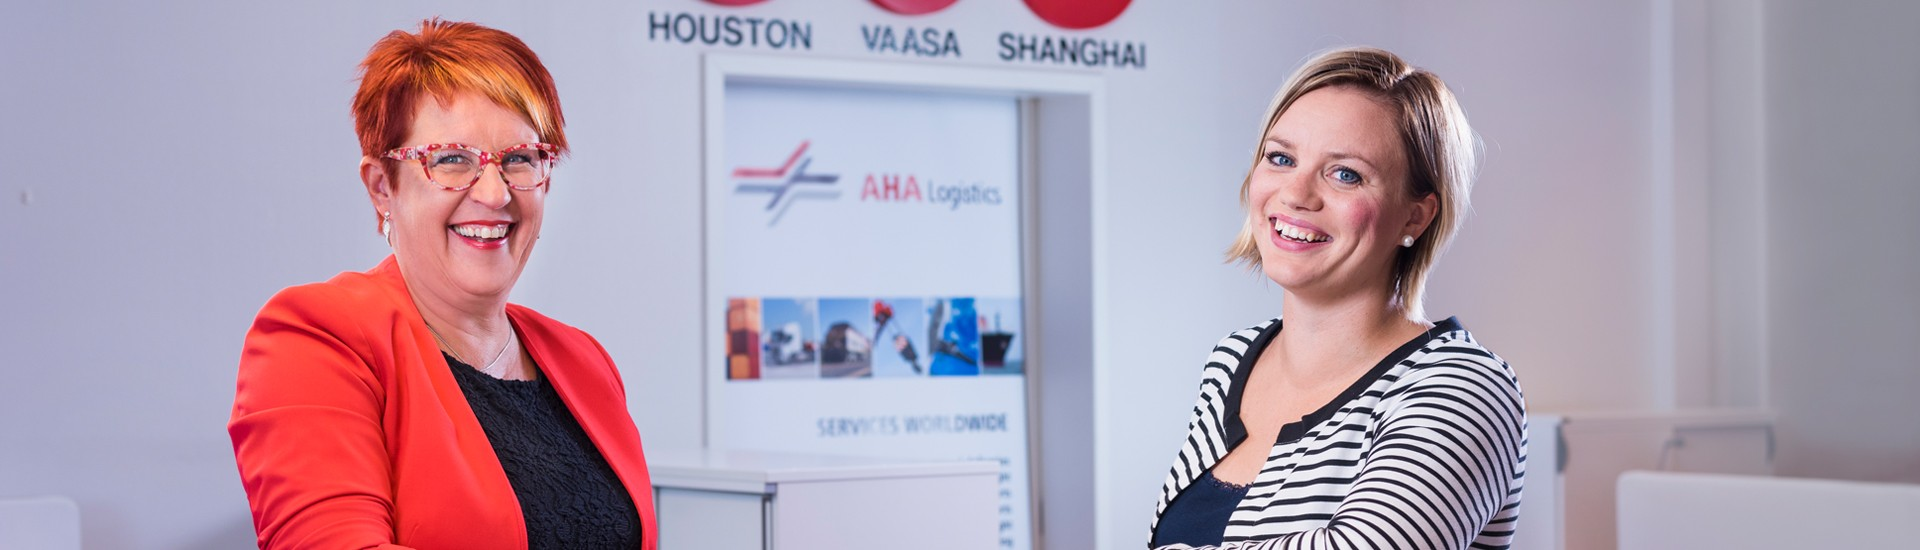 About us|Always ahead|Company presentation|AHA Logistics